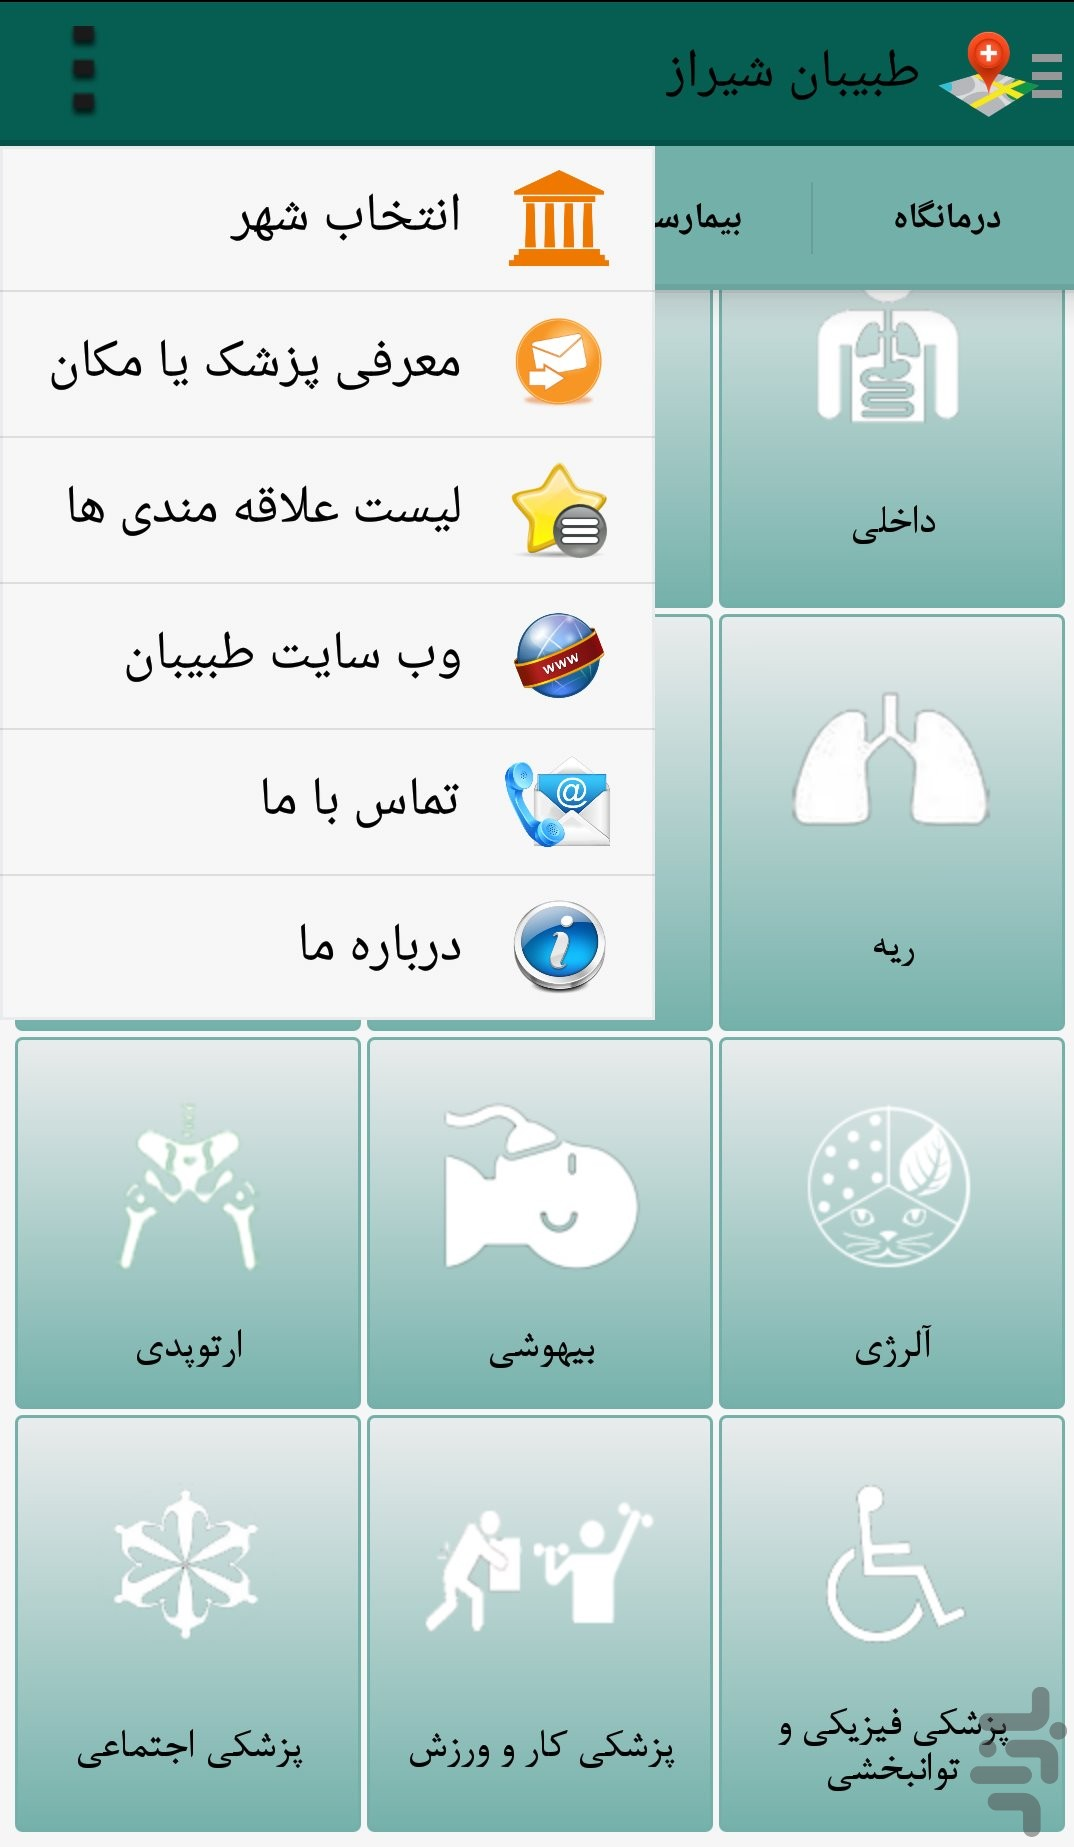 طبیبان screenshot